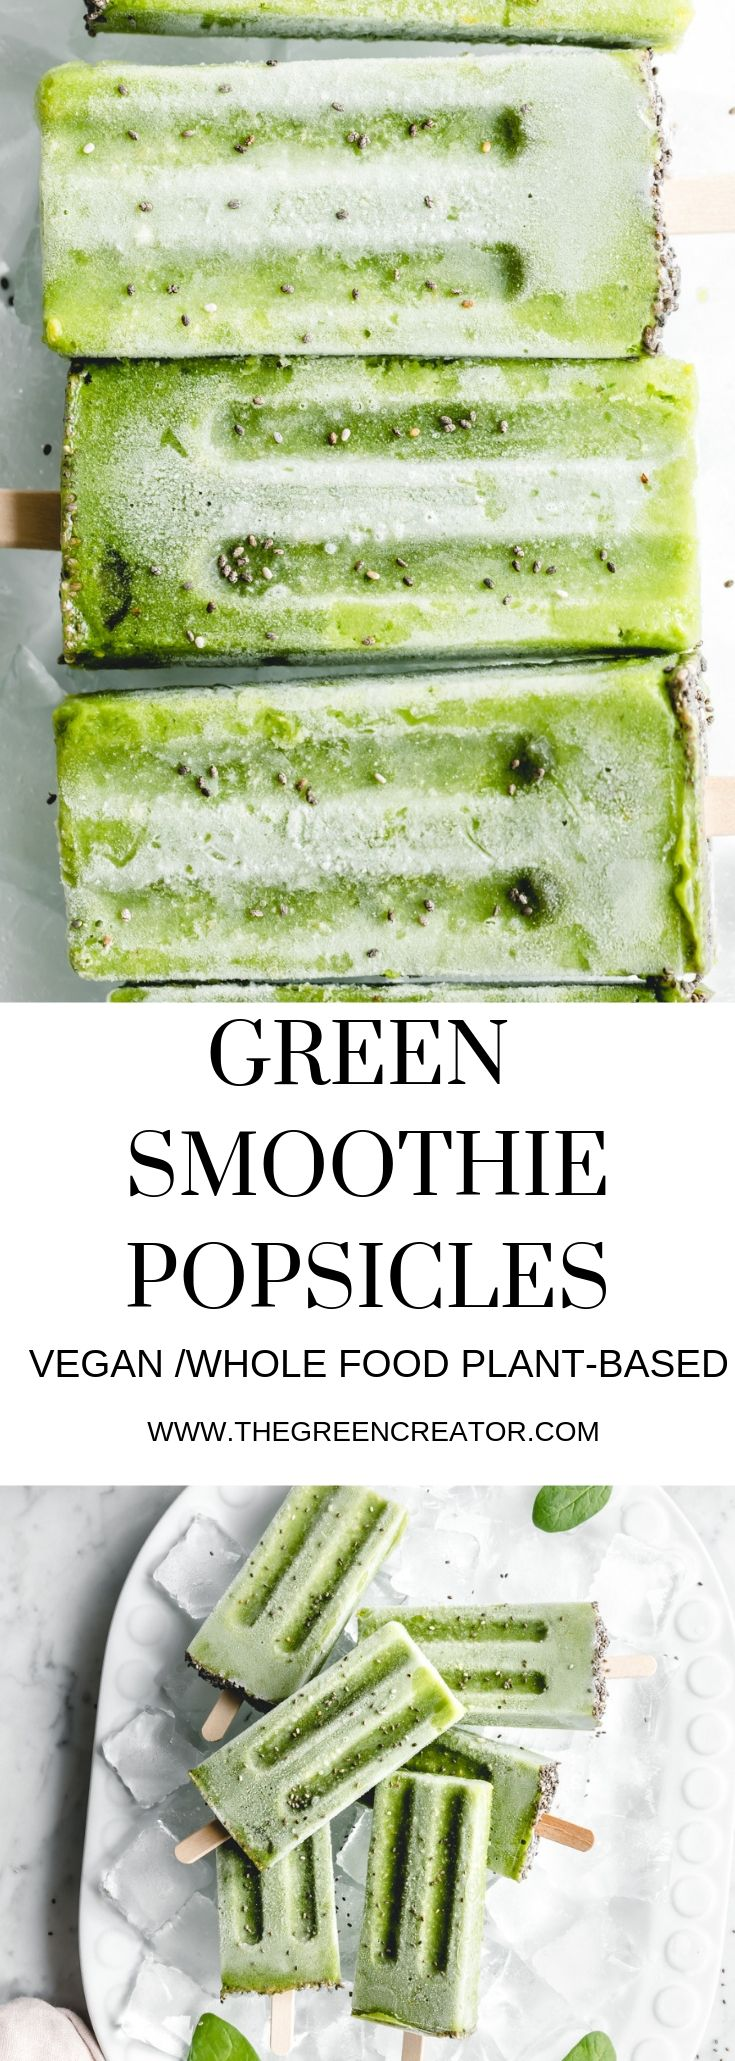 green popsicles close up and on plate